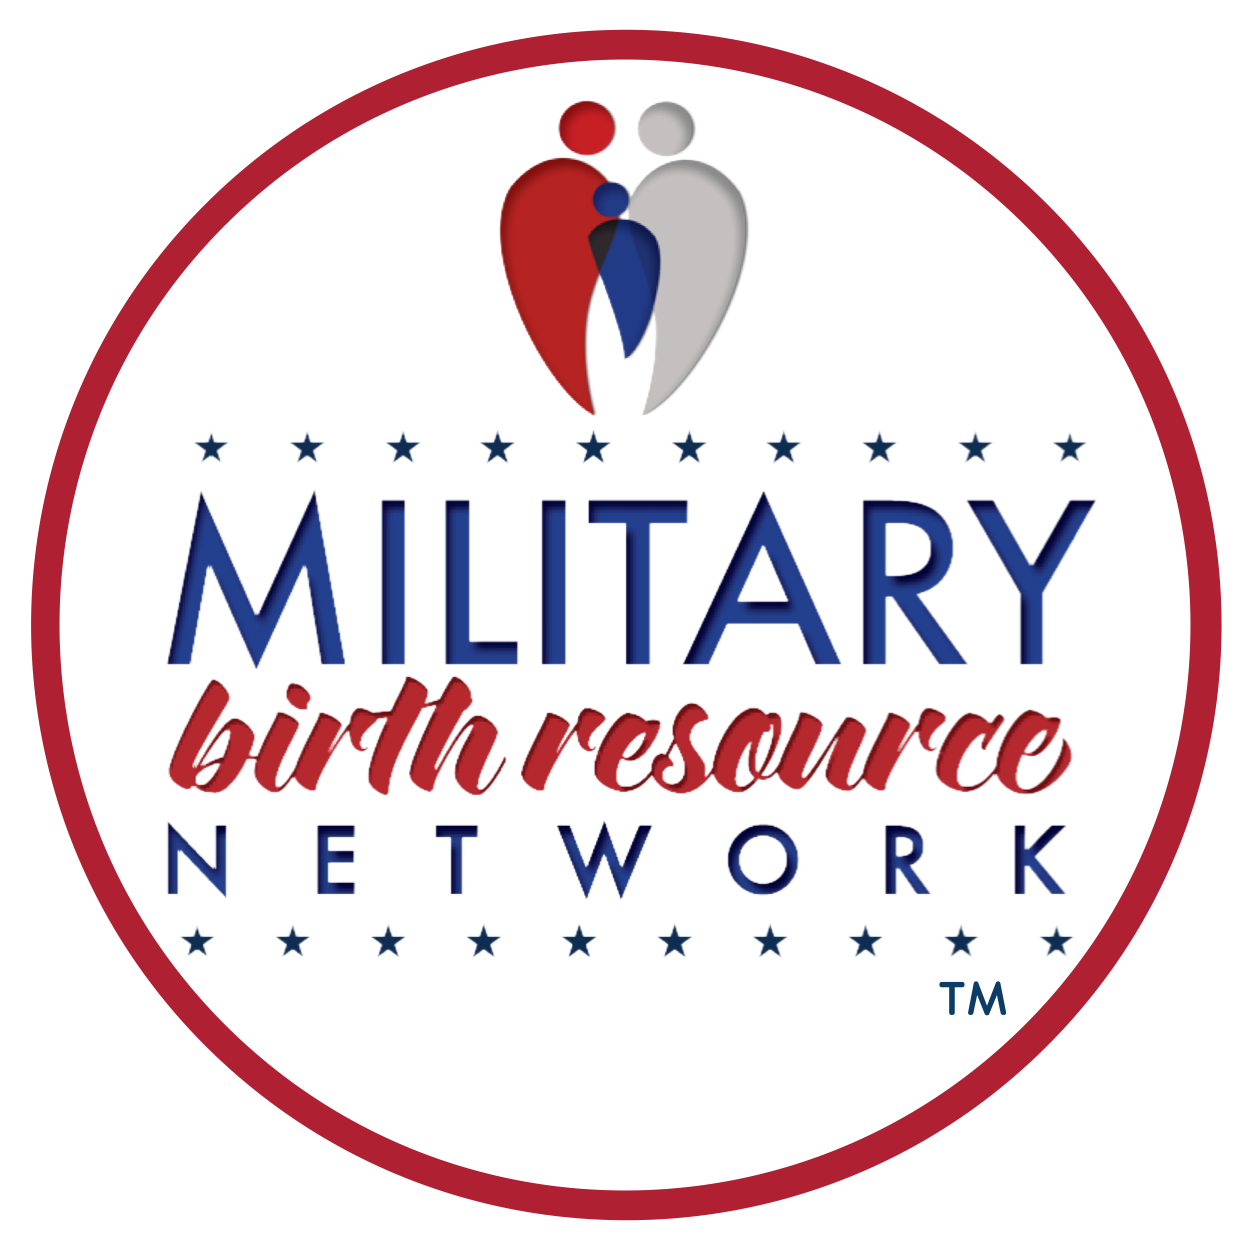 Military Birth Resource Network